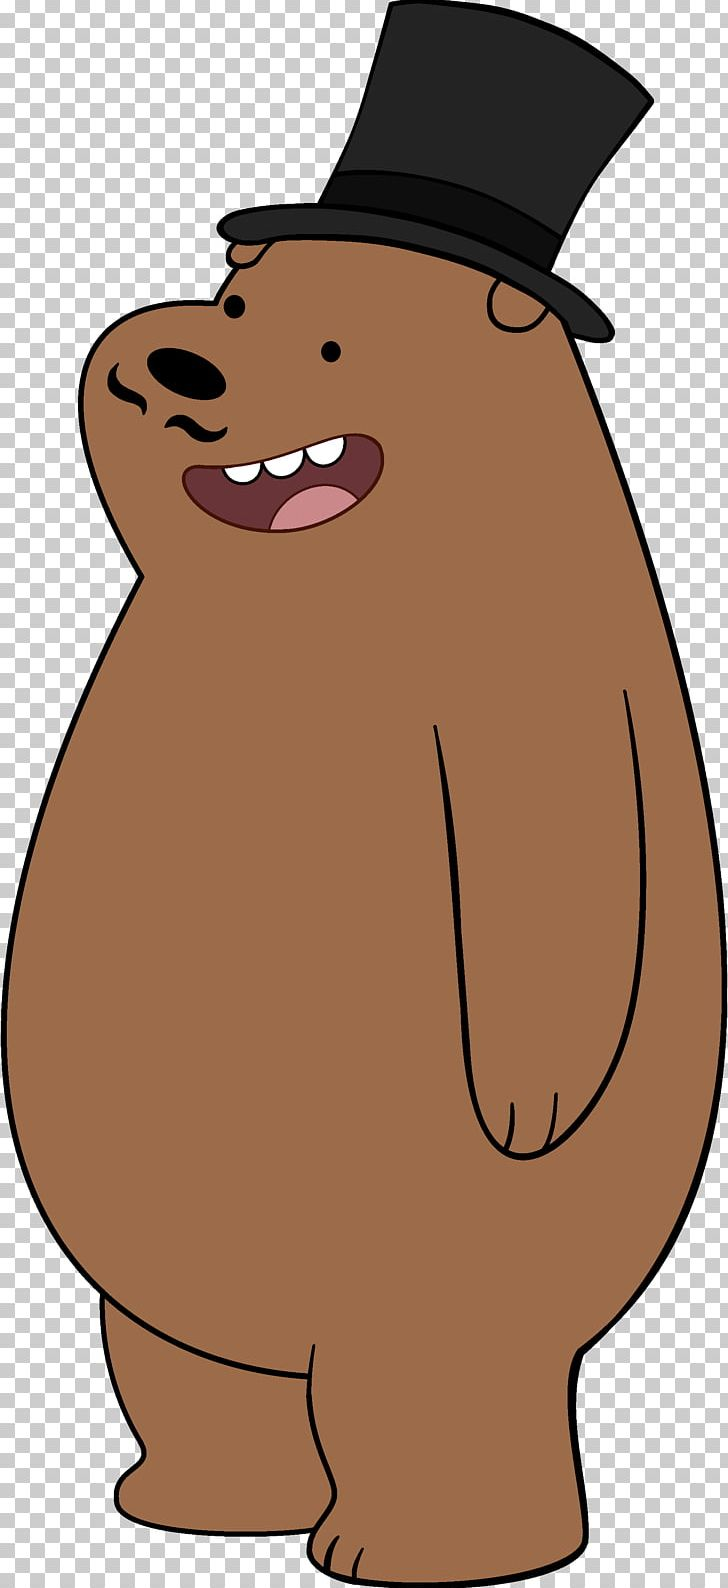 Brown Bear Giant Panda Polar Bear Grizzly Bear PNG, Clipart, Adventure Time, Animals, Animation, Bear, Bears Free PNG Download